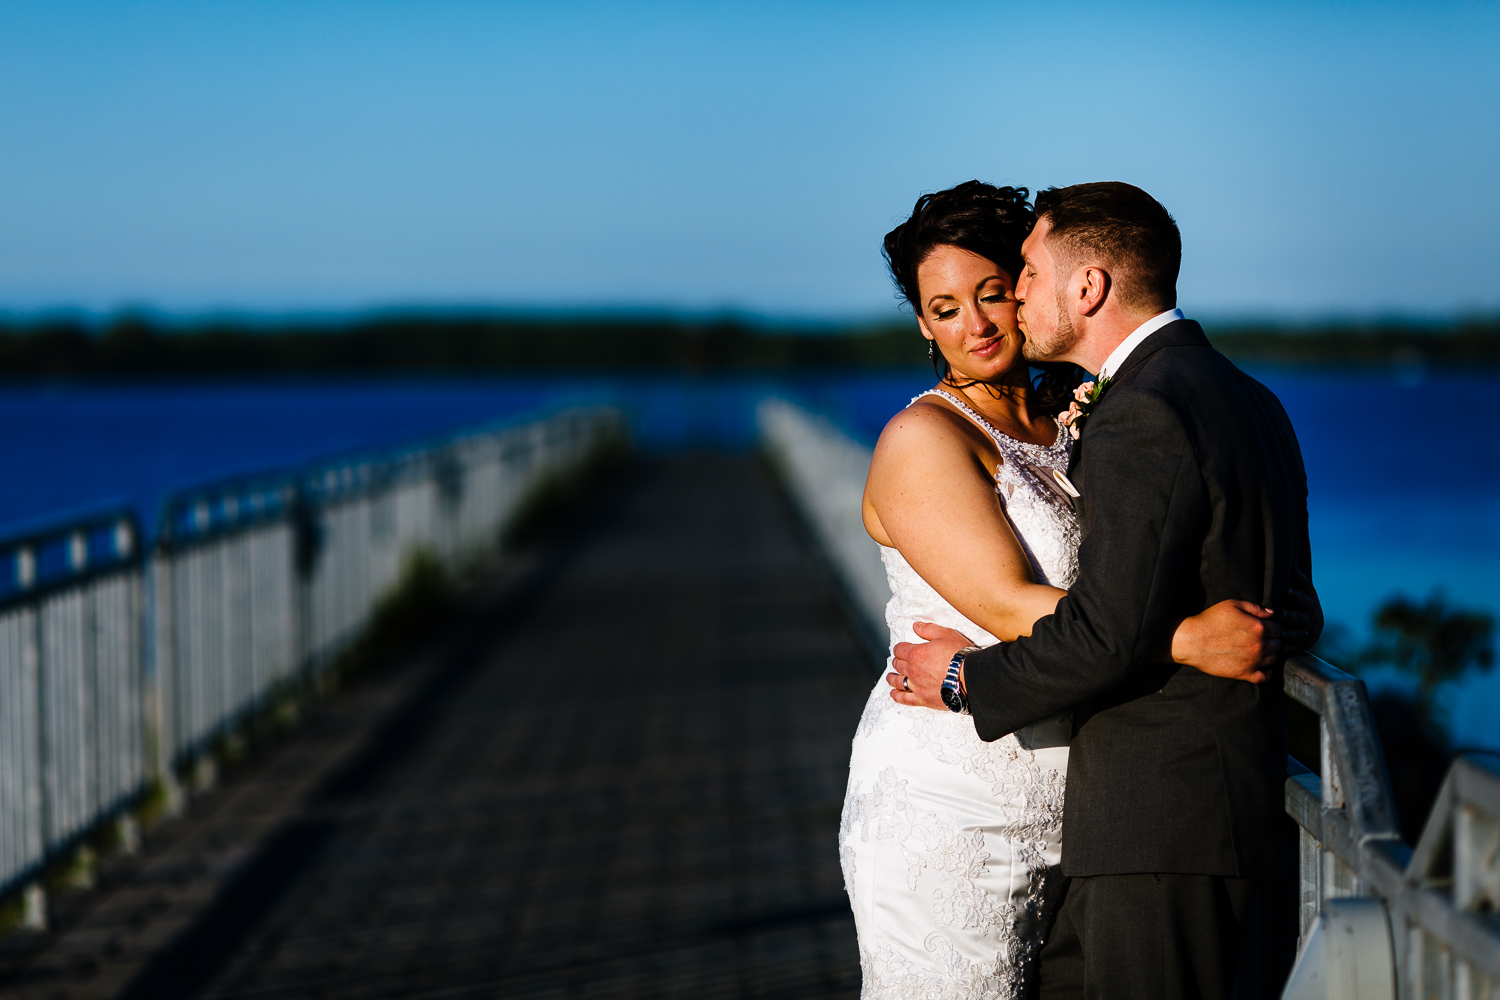 Groom kisses his bride on a pier at sunset. A blue lake is in the background.